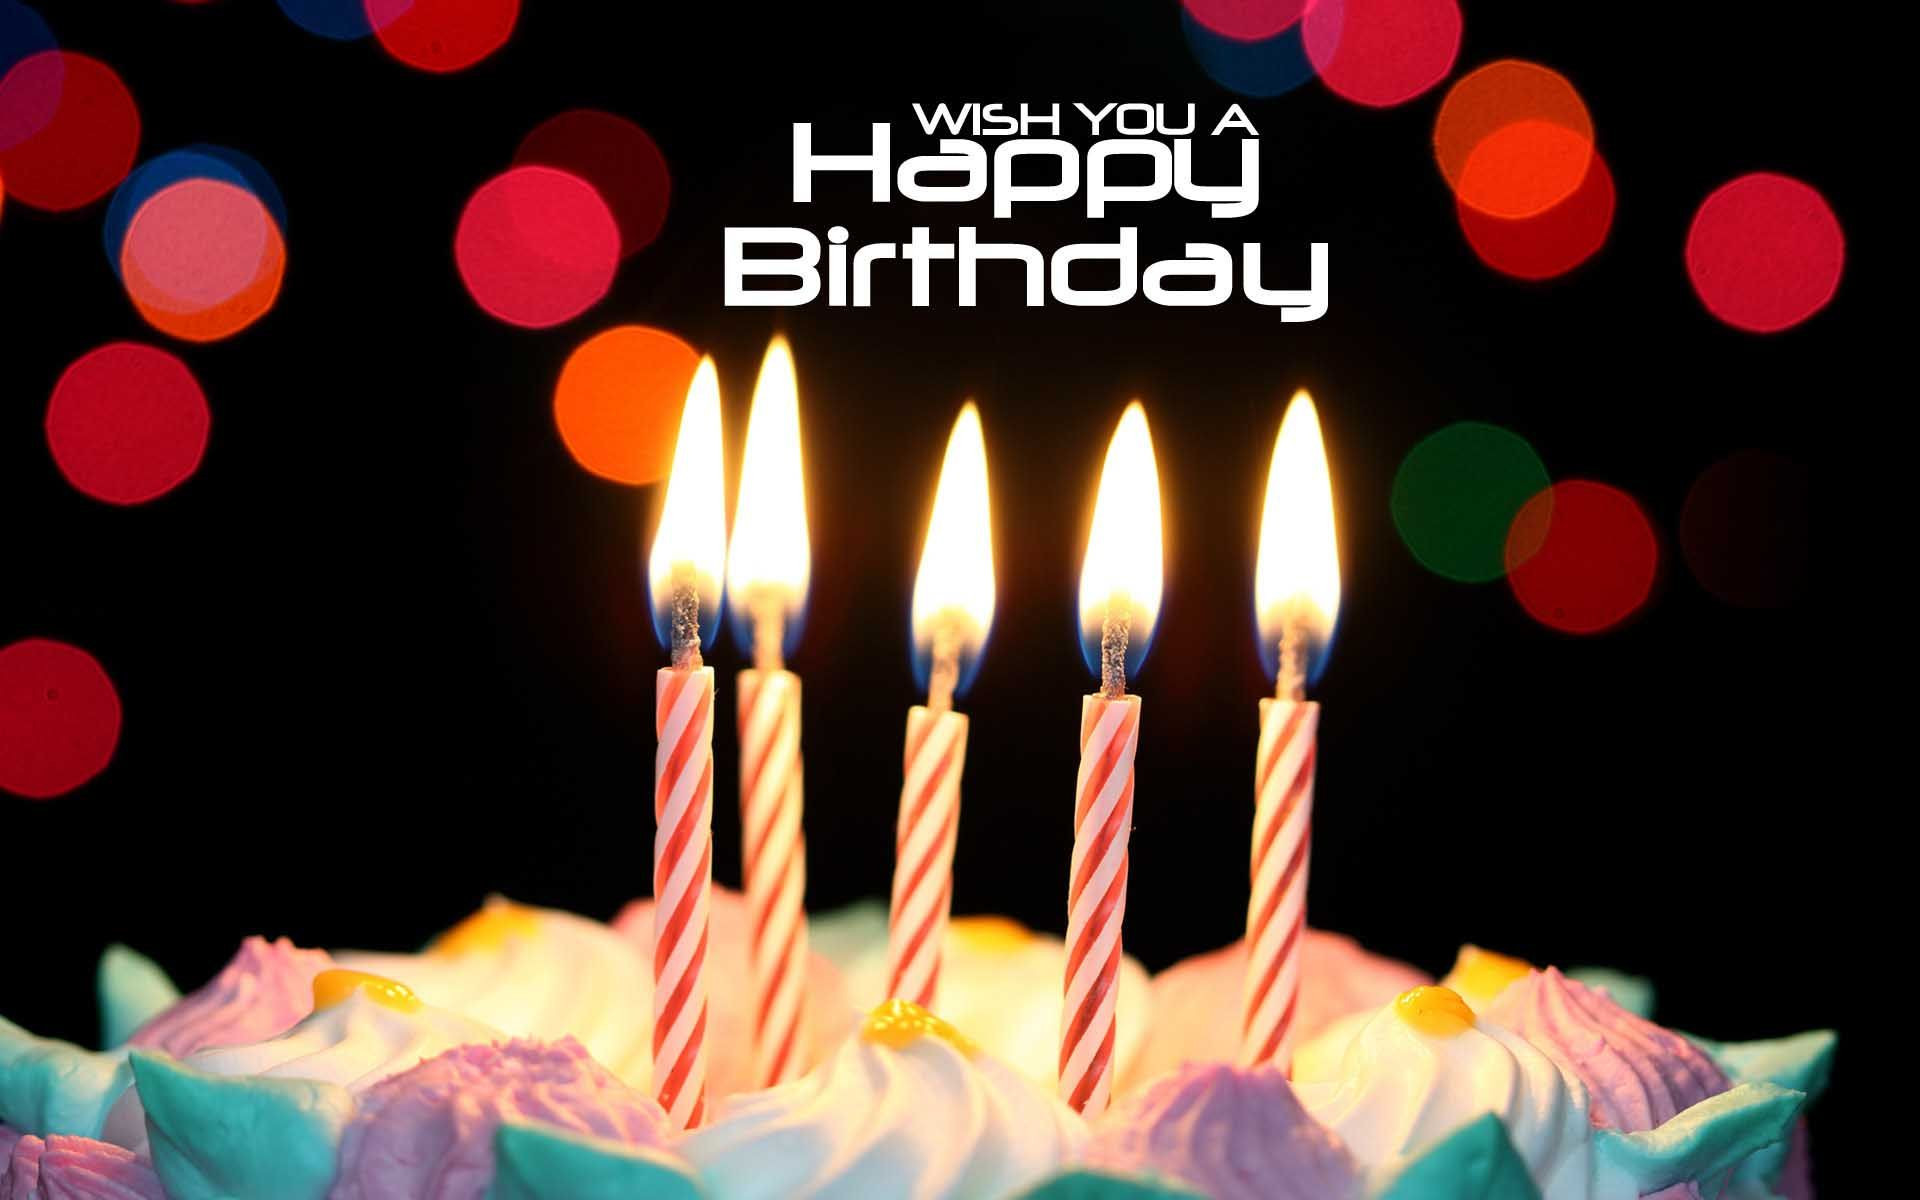 Best ideas about How To Wish Happy Birthday . Save or Pin Wish You A Happy Birthday Now.